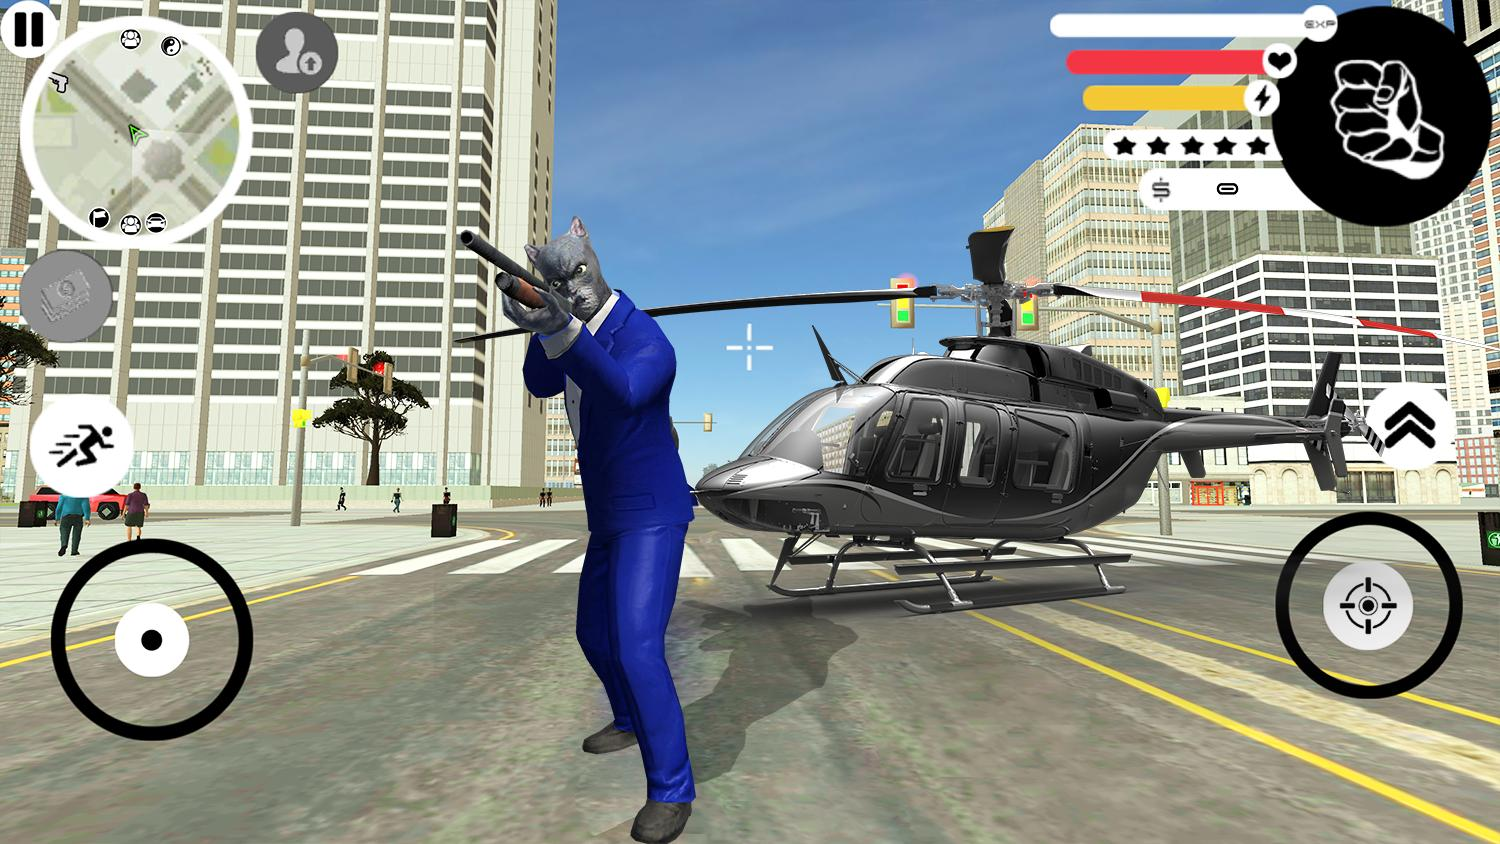 Grand Panther Gangster Rope Hero Vegas Crime 2 Screenshot 2